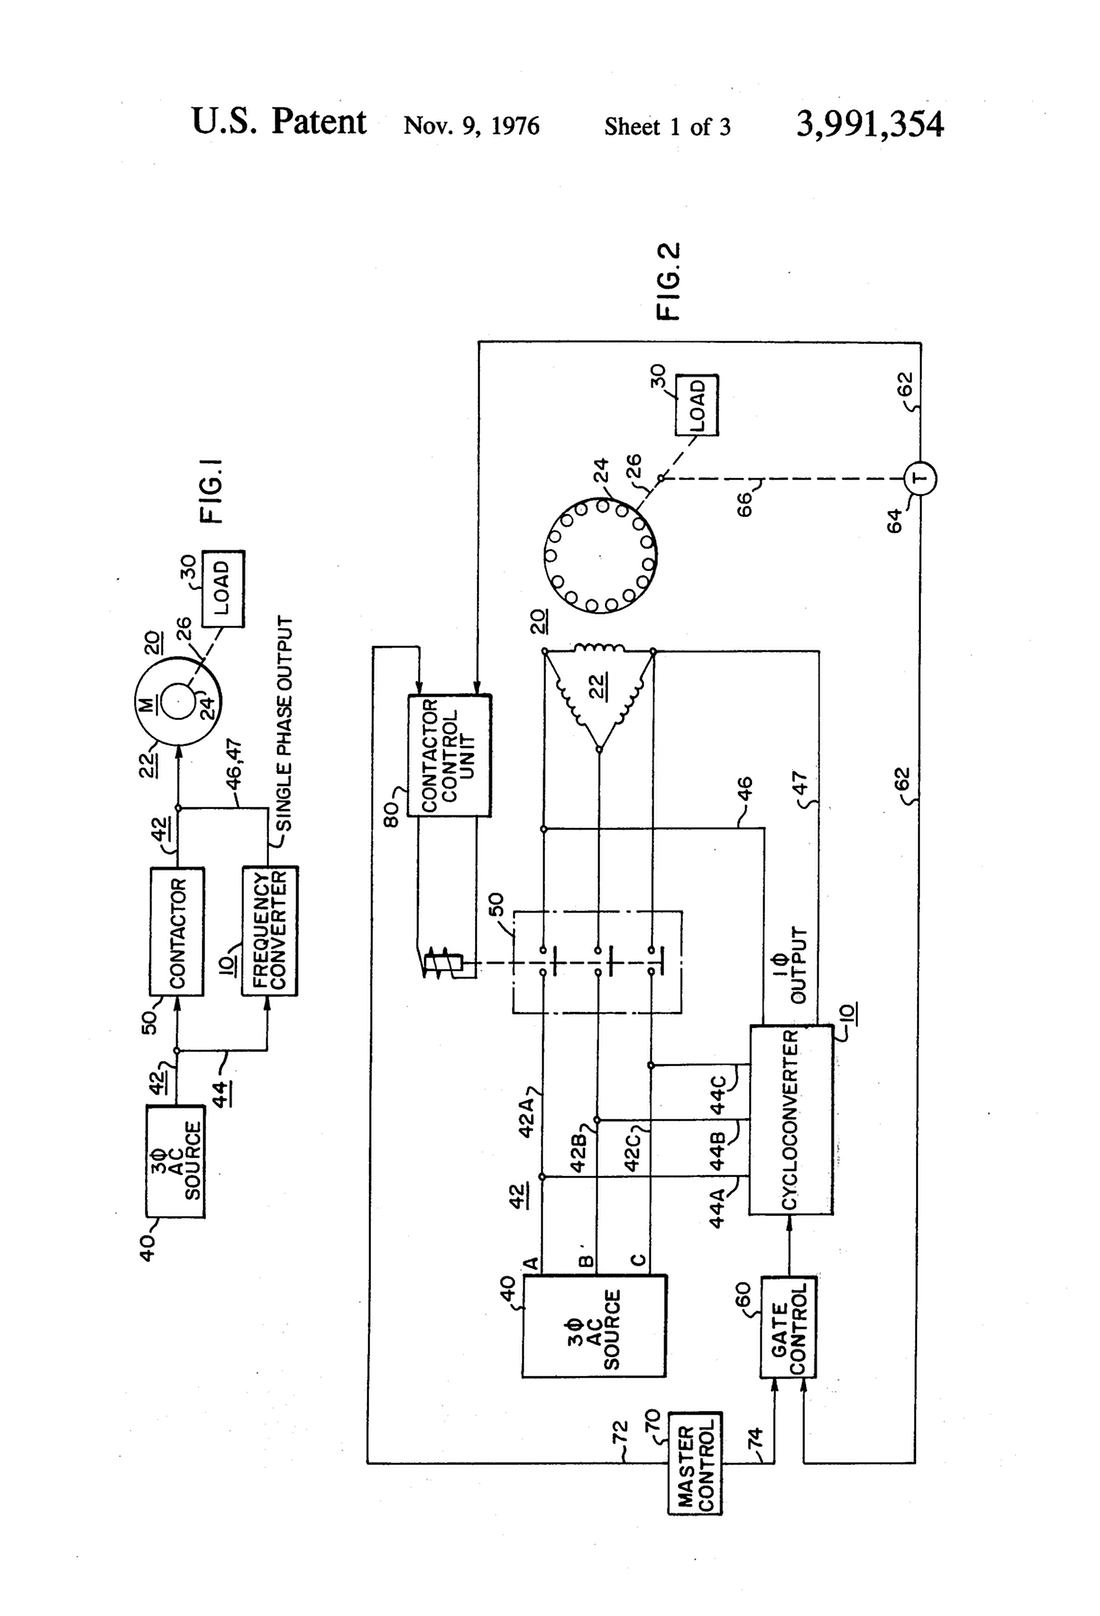 House Wiring Diagram With Inverter Connection House